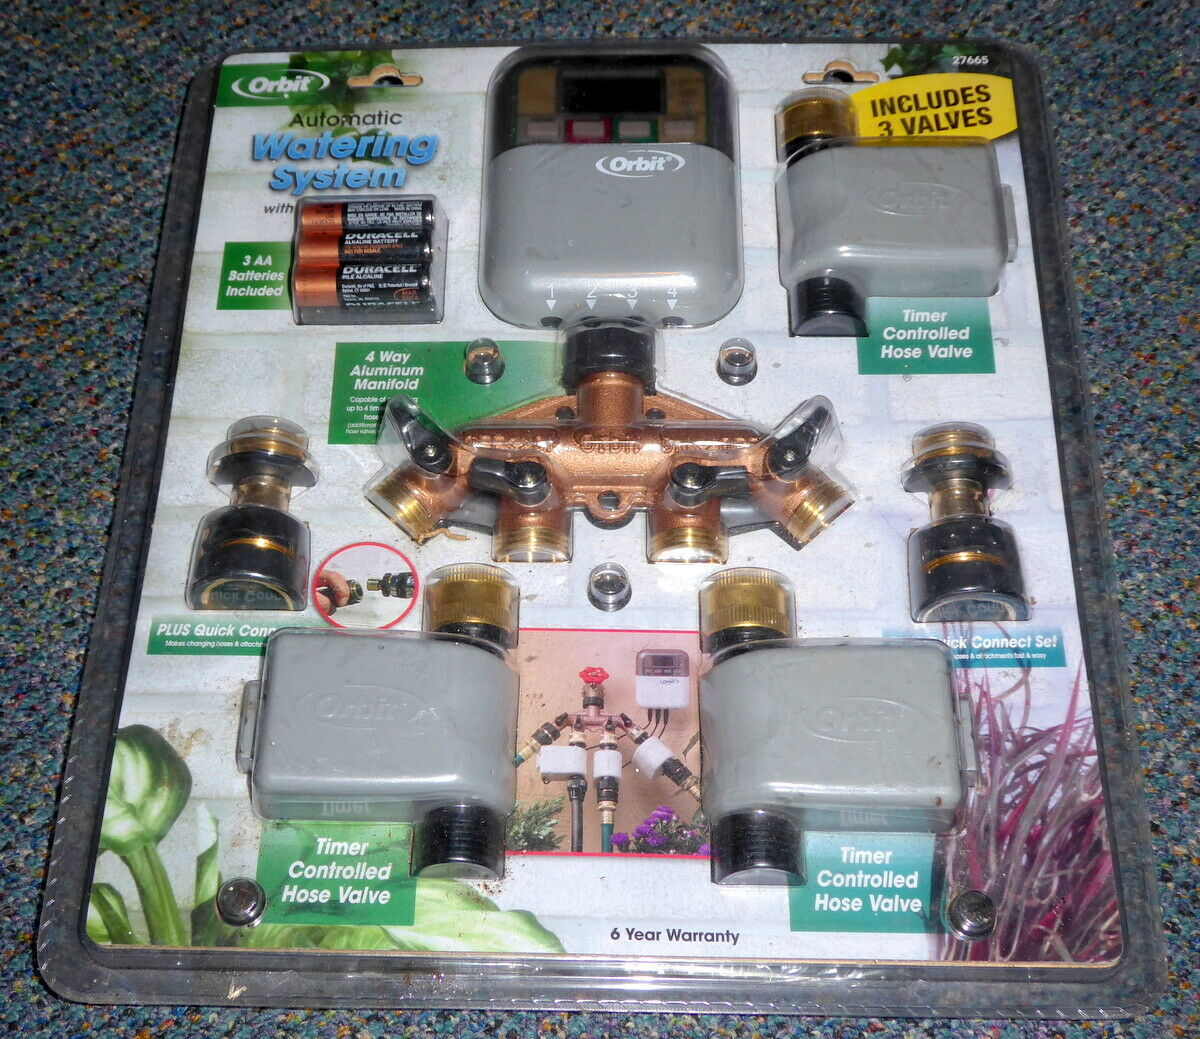 Orbit Automatic Yard Watering System Model 27665 NOS Sealed 4-Outlets & 3-Valves